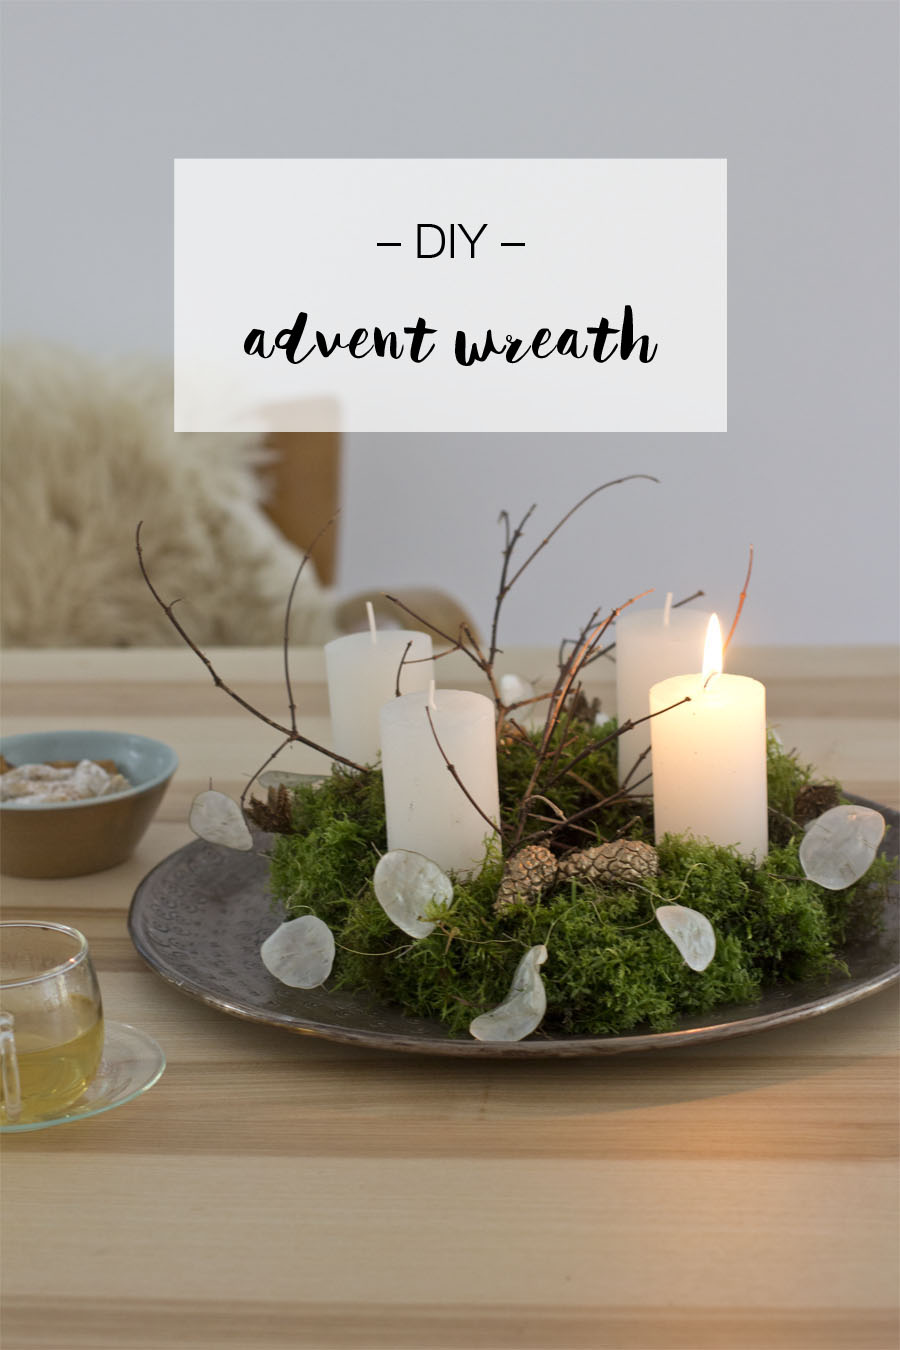 DIY advent wreath | LOOK WHAT I MADE ...